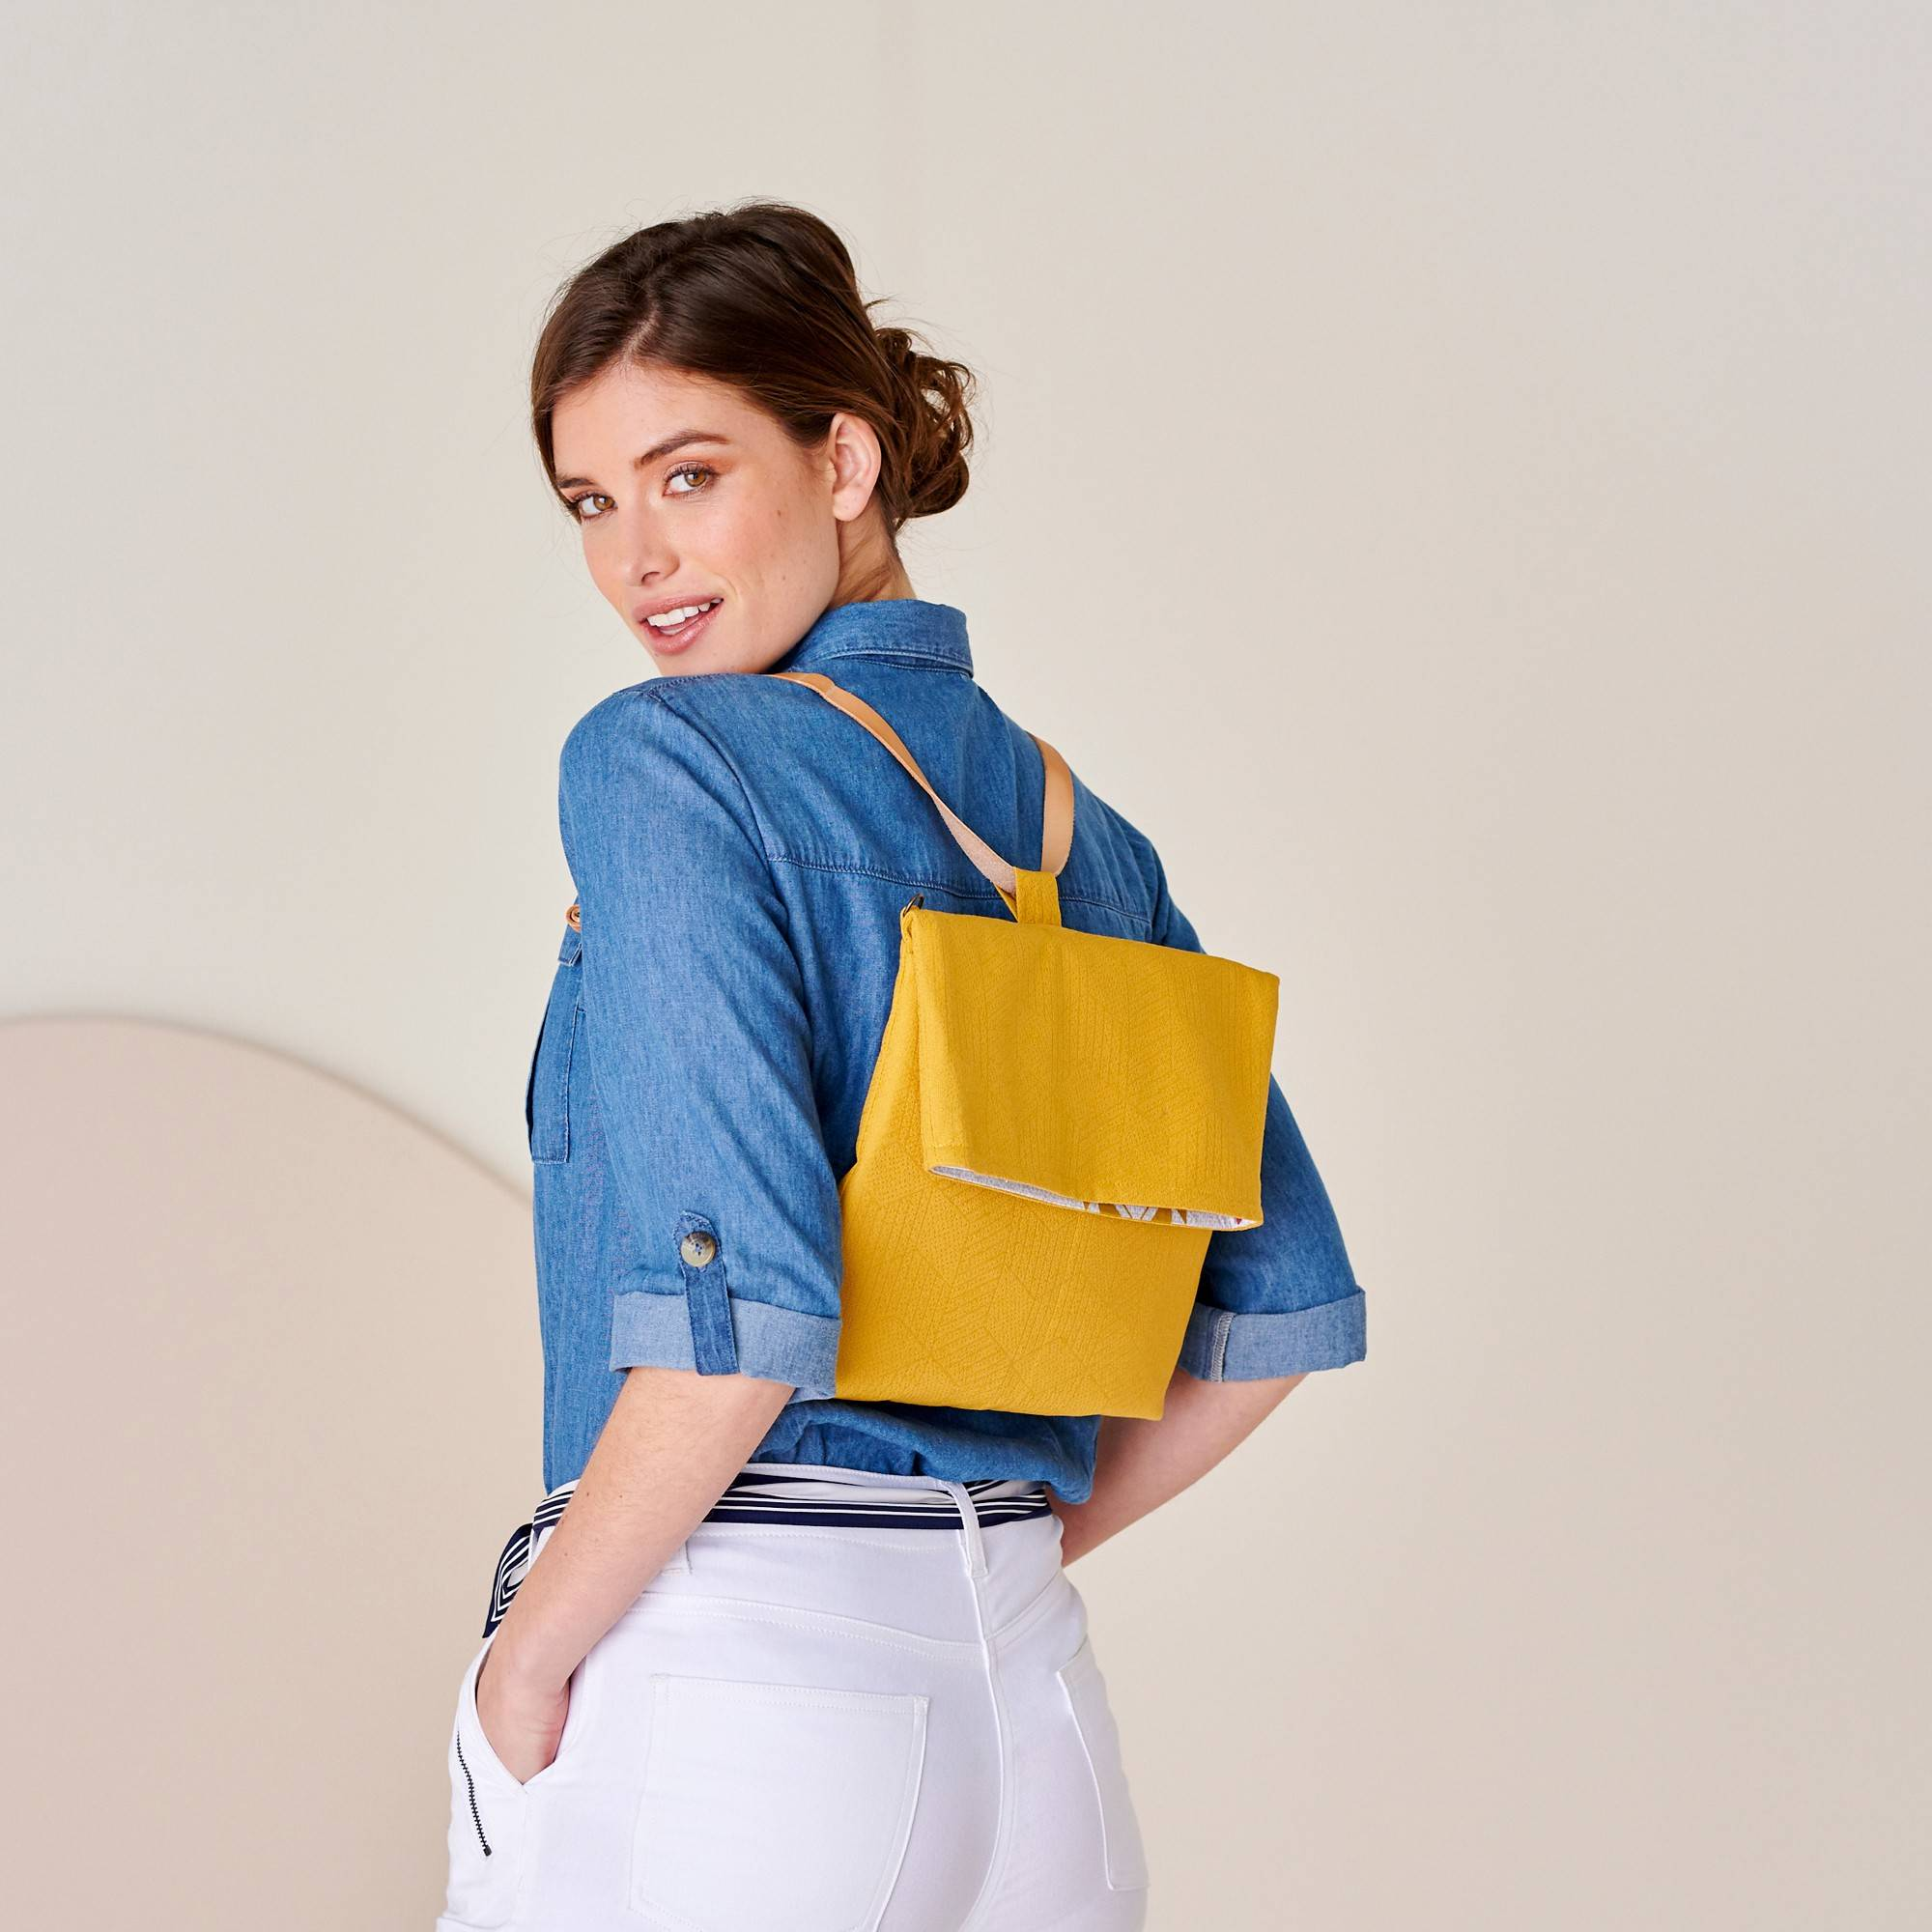 Sac à dos transformable en besace - curry, fabrication éco-responsable - jaune - Taille : TU - Blancheporte